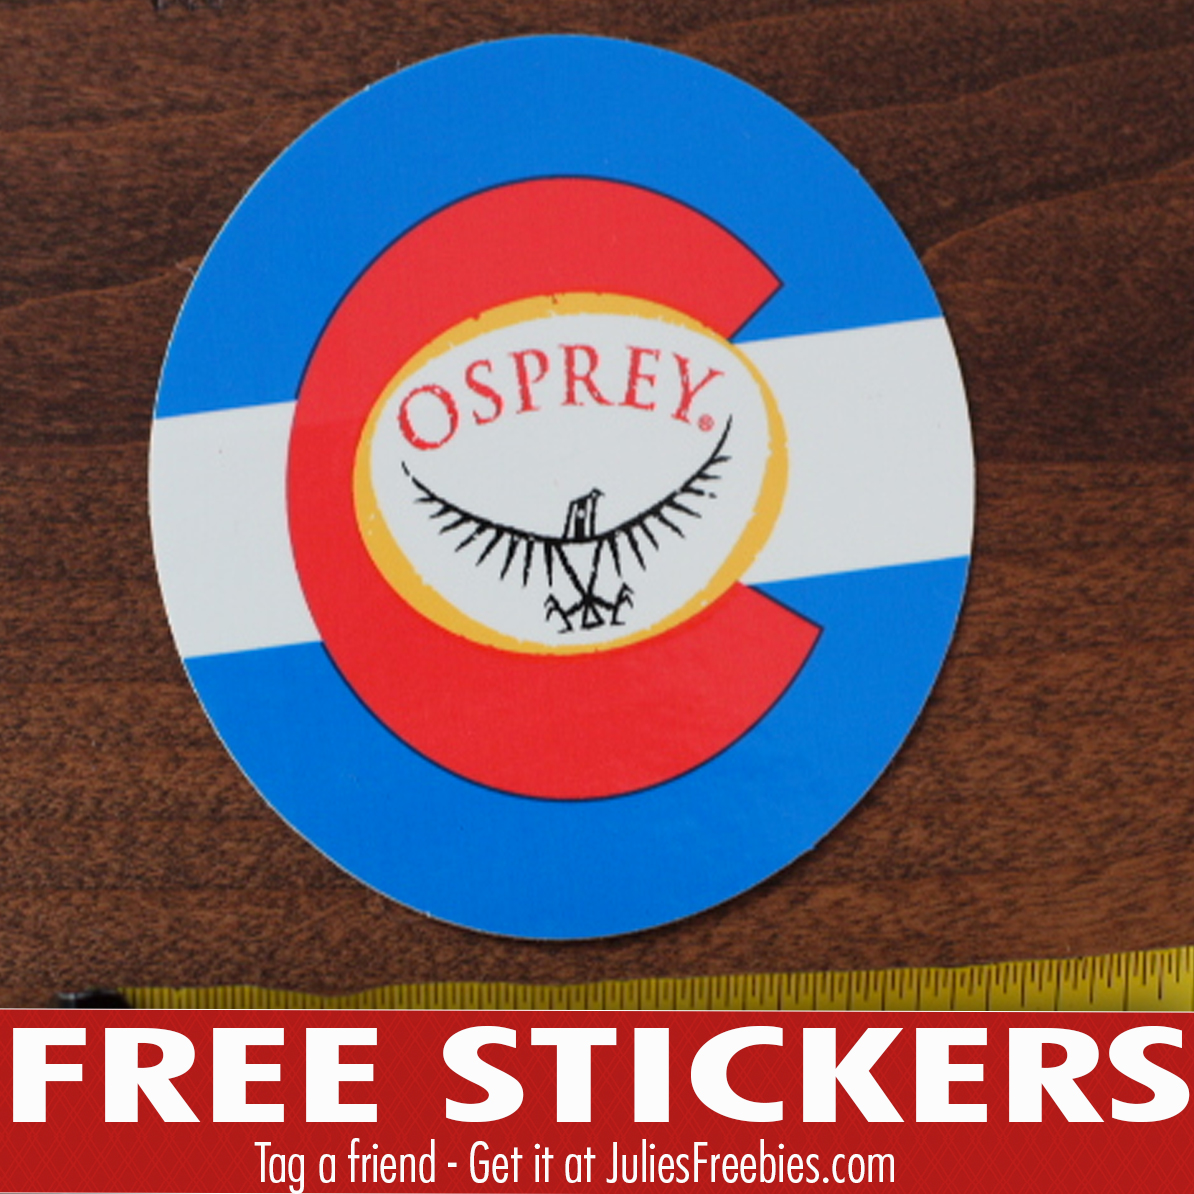 Osprey stickers